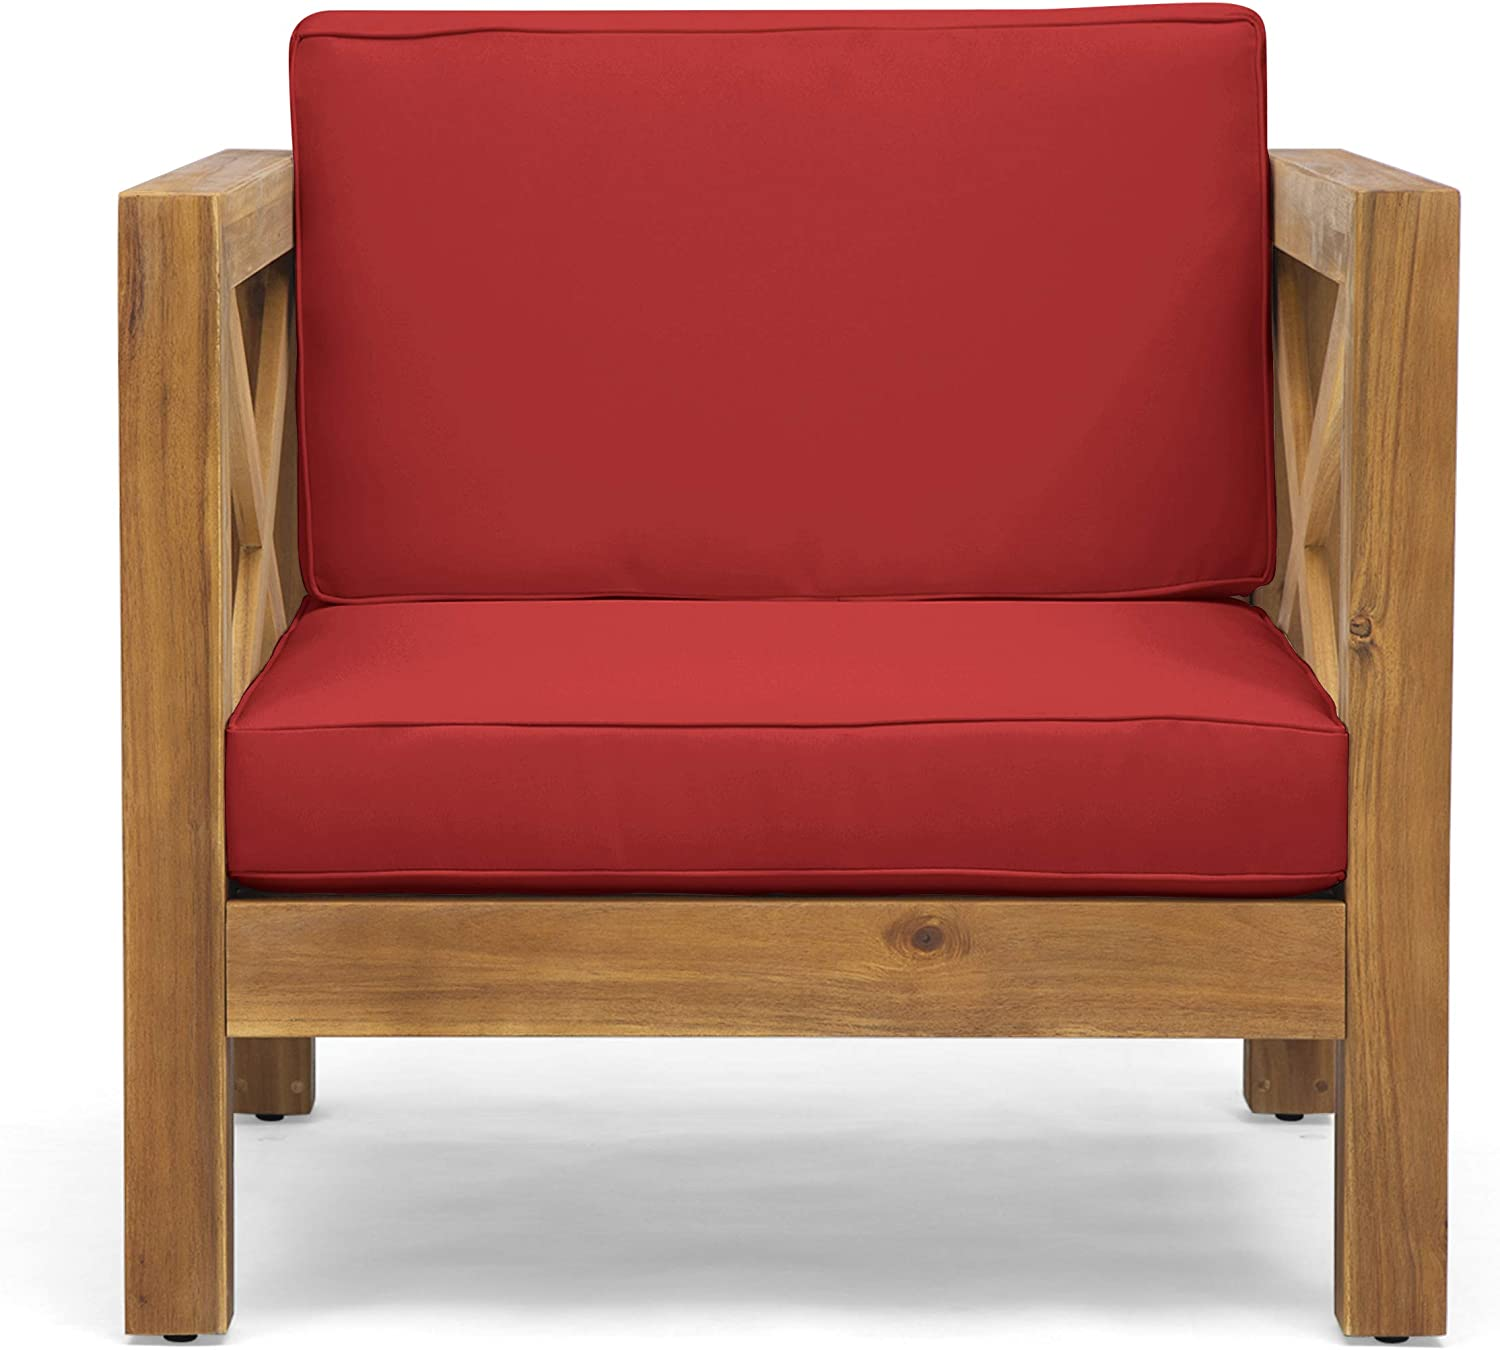 Great Deal Furniture Indira Outdoor Acacia Wood Club Chair With Cushion Teak Finish And Red Garden Outdoor